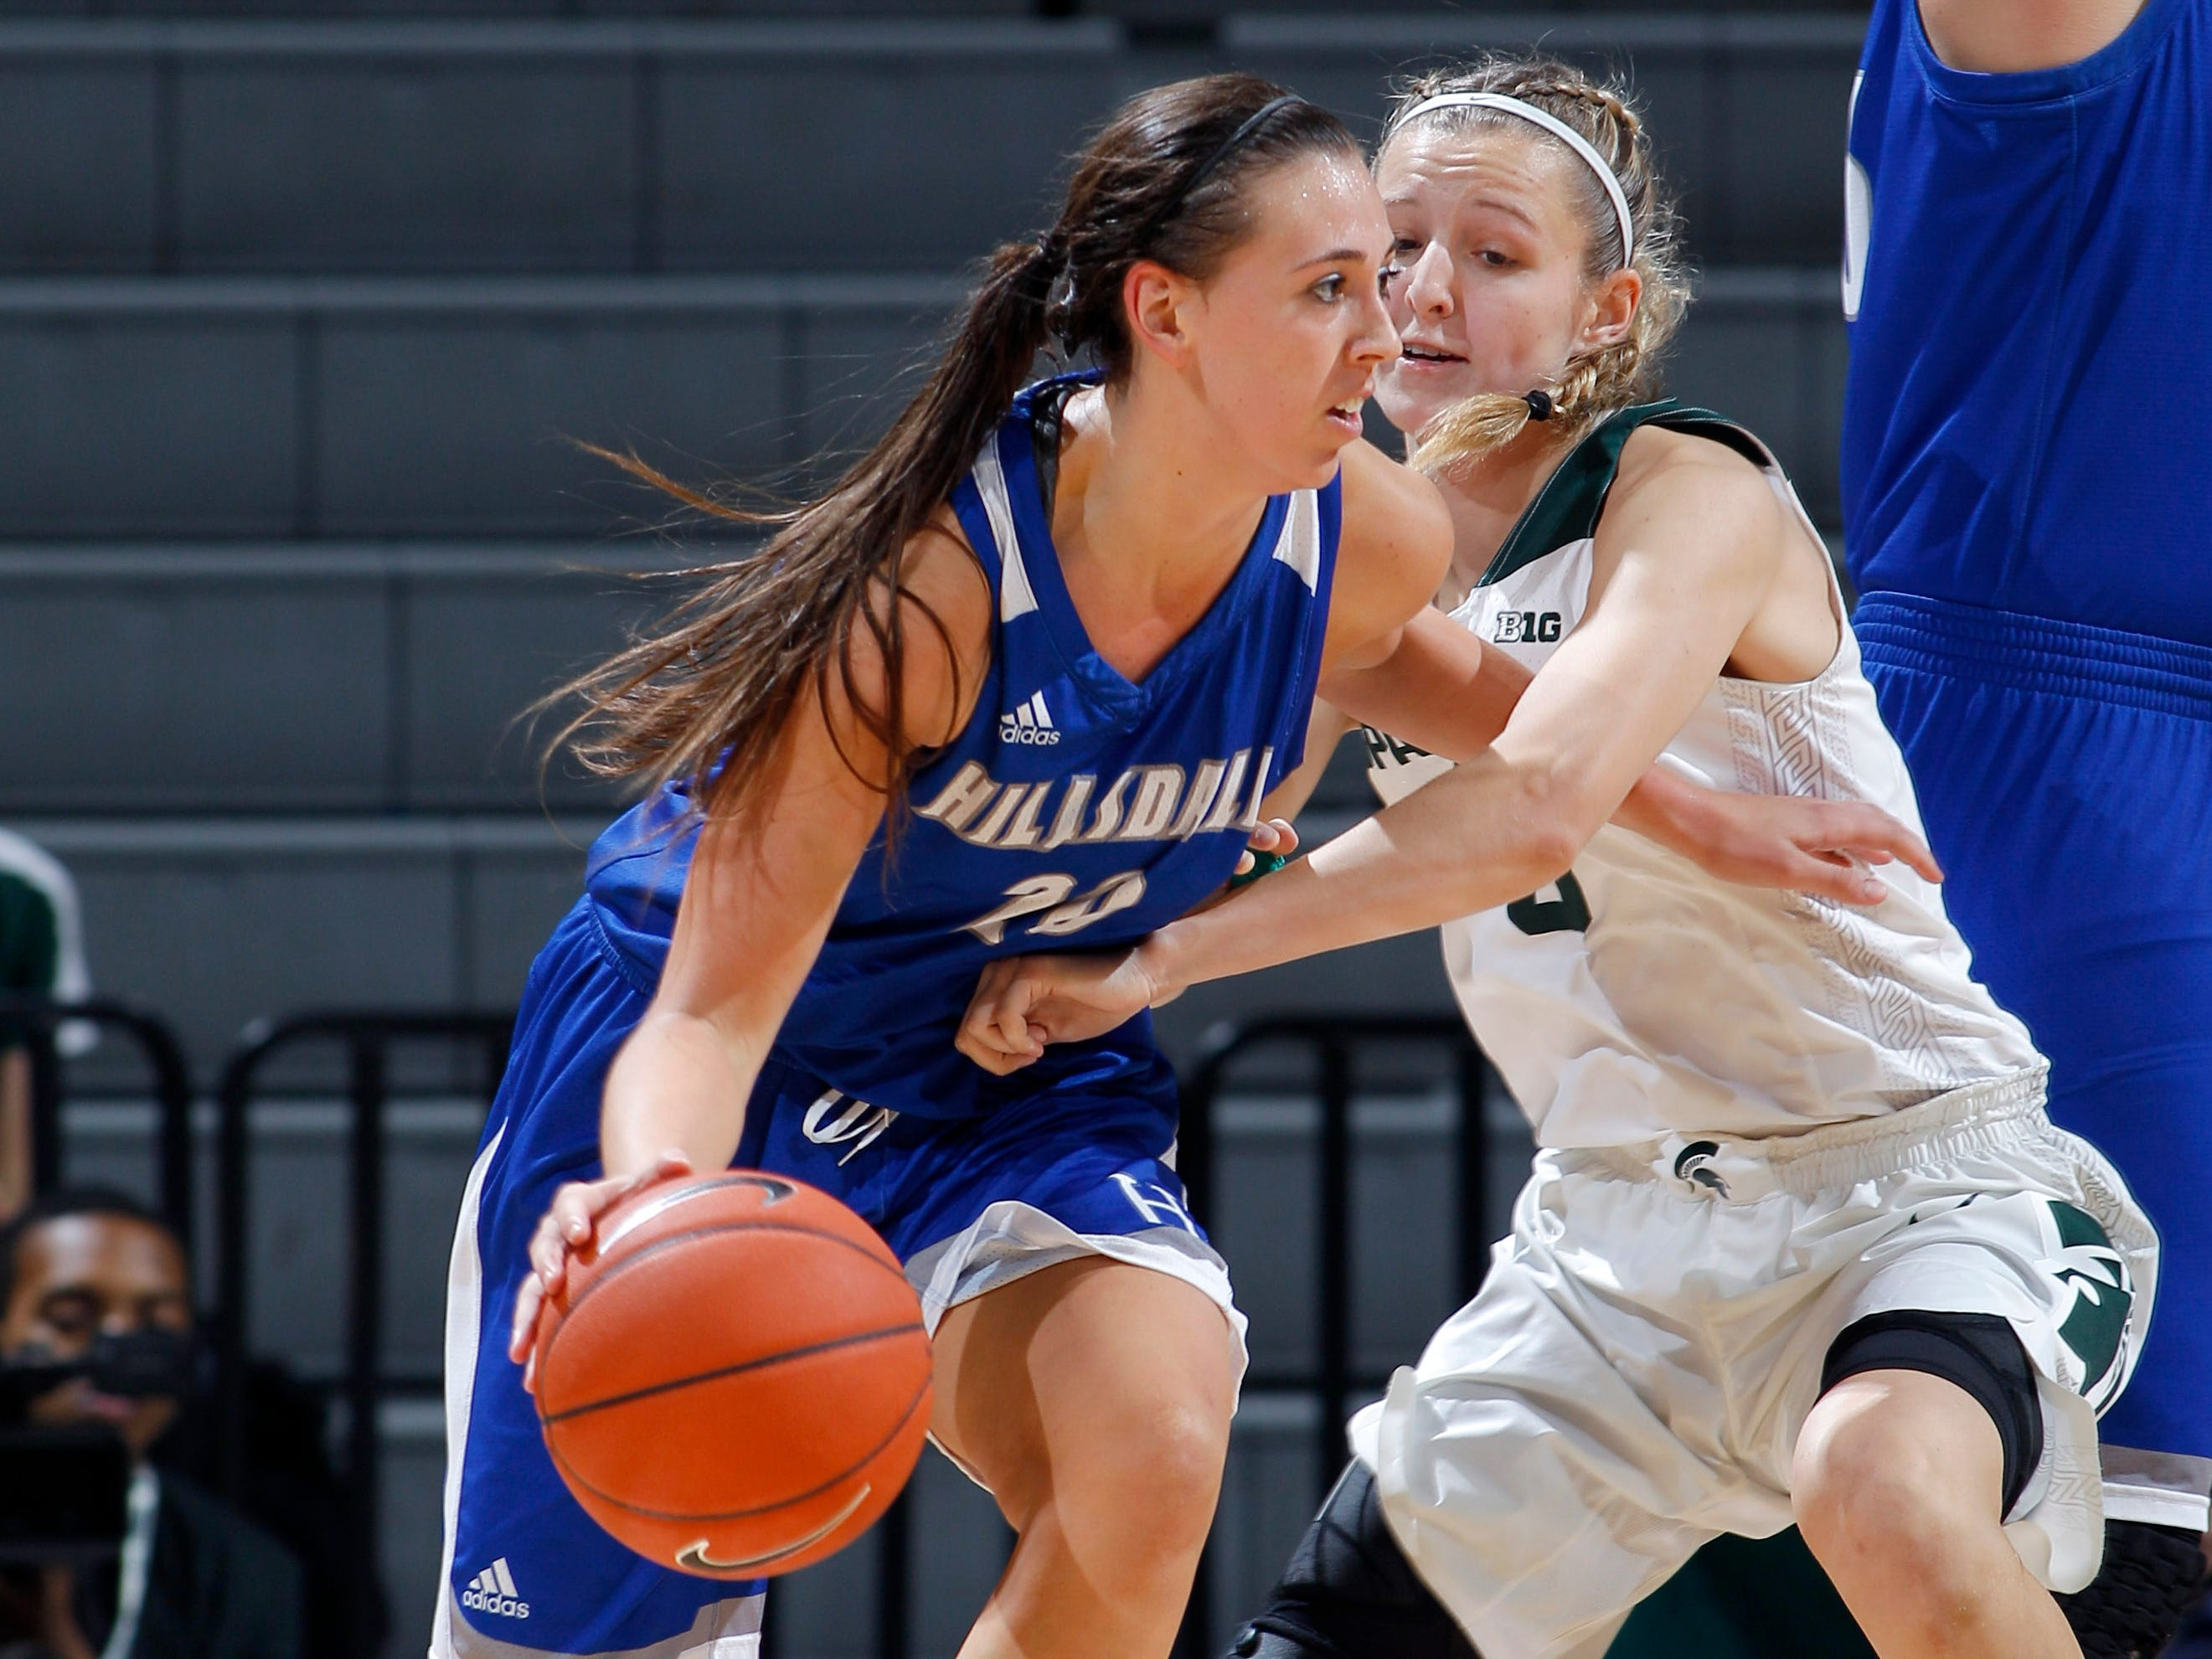 Hillsdale's Makenna Ott, left, who is from Haslett, drives against Michigan State's Claire Hendrickson, Thursday, Nov. 1, 2018, in East Lansing, Mich.